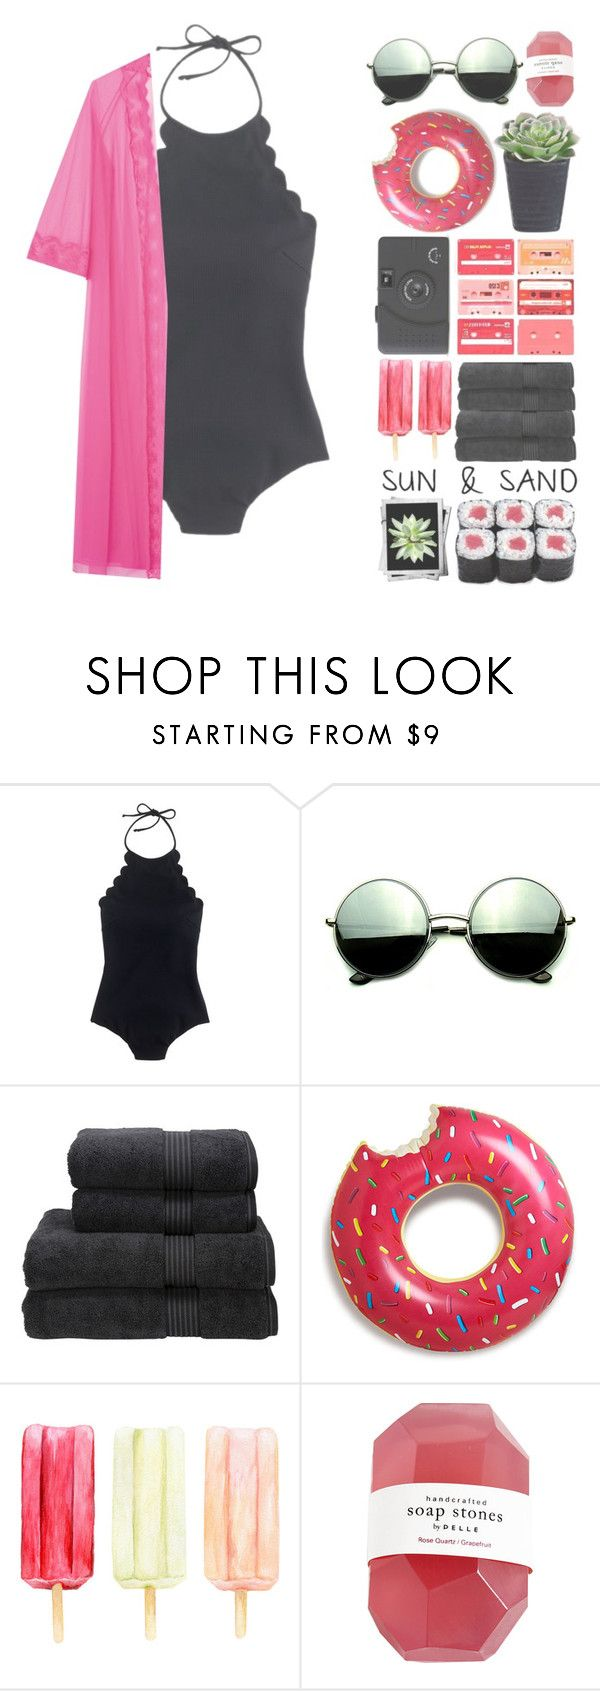 """""""Aloha- Møme"""" by paintingiraffe ❤ liked on Polyvore featuring J.Crew, Revo, Christy, CO, tumblr, summerstyle, simpleset, aesthetic and summerbrights"""